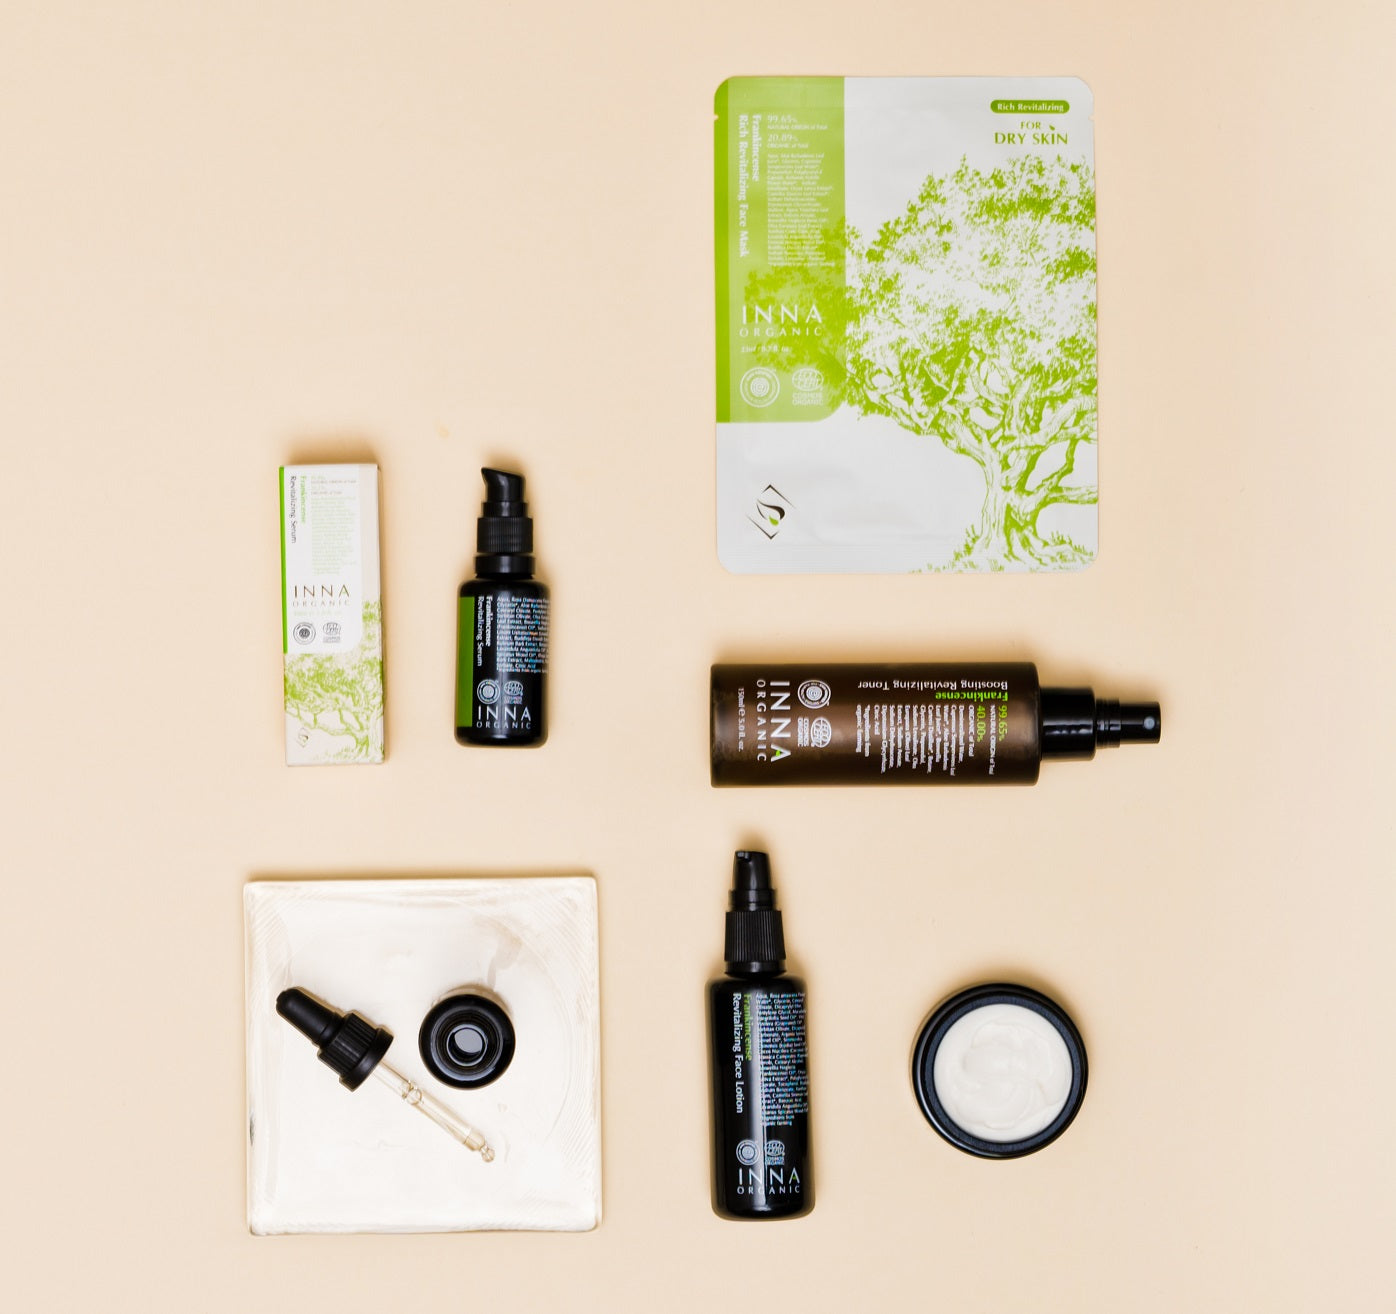 Inna Organic organic EWG-verified and COSMOS certified Asian sheet masks and skincare available at Nourish Clean Beauty